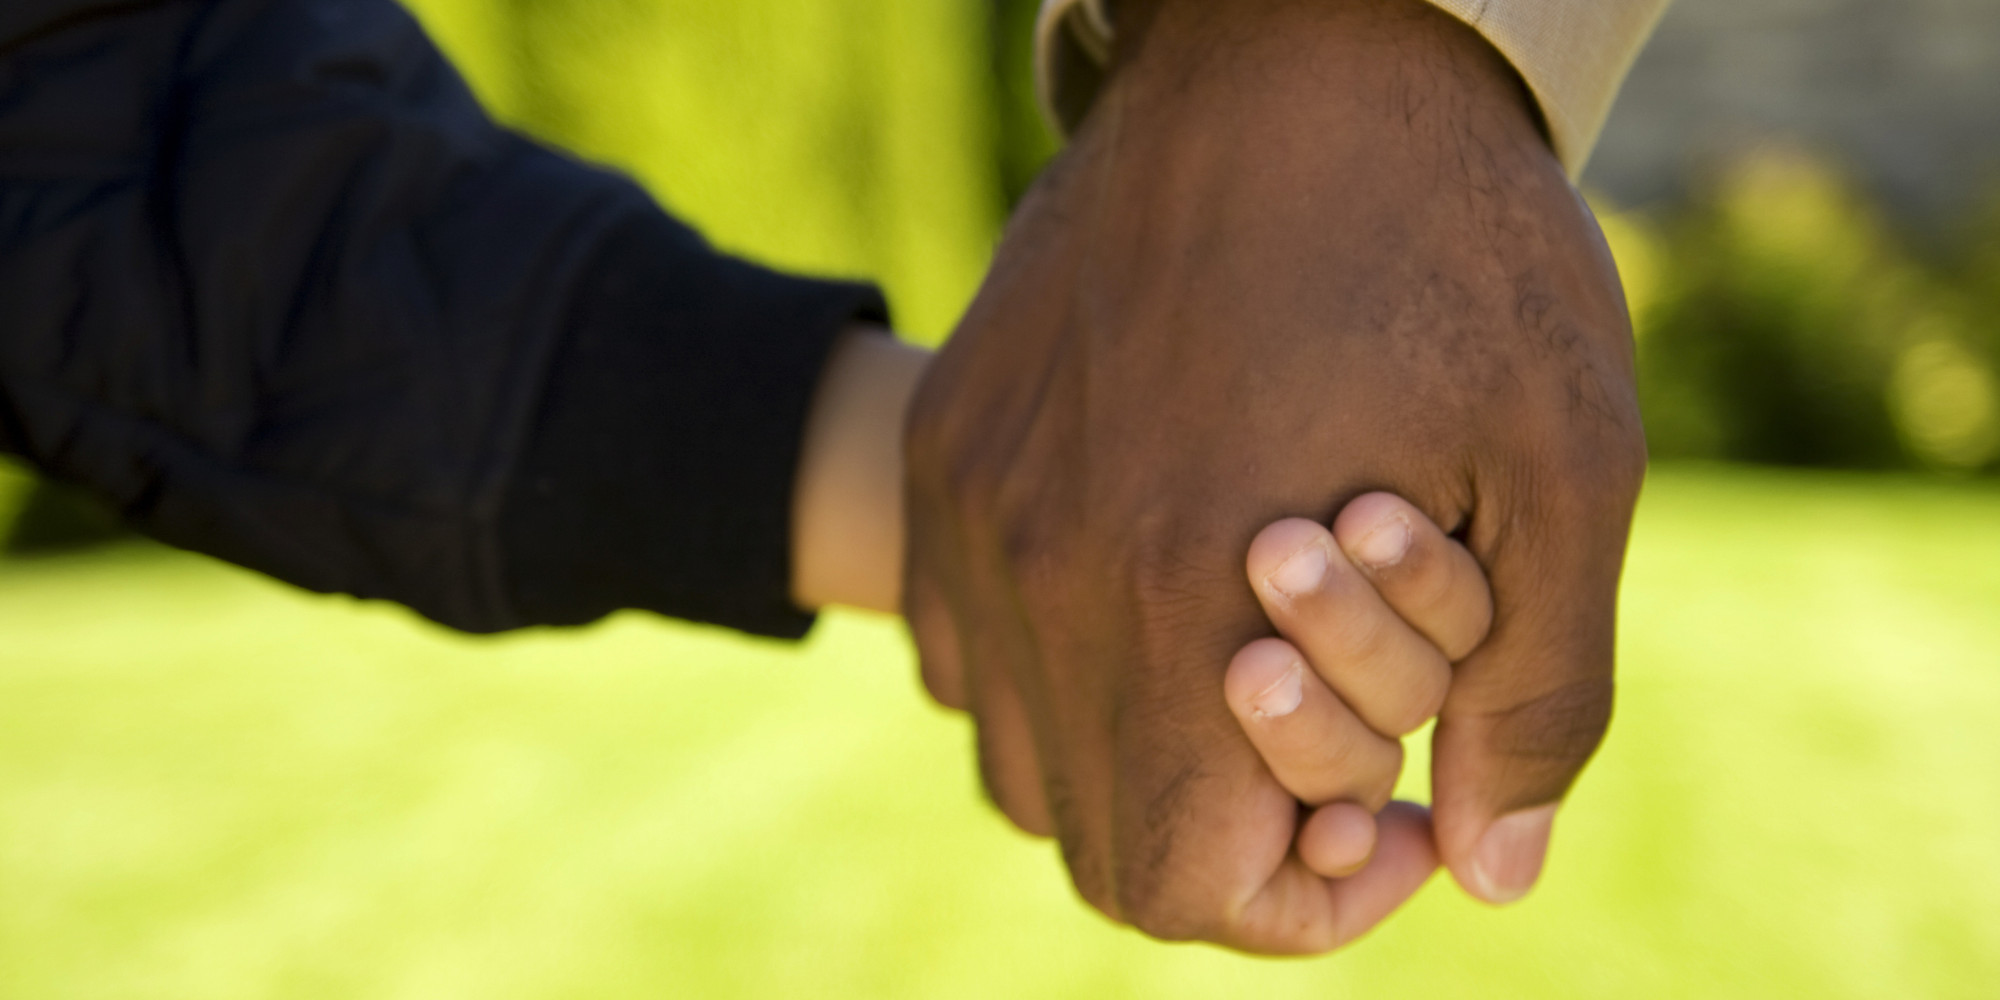 Family Reunification & Fatherhood -